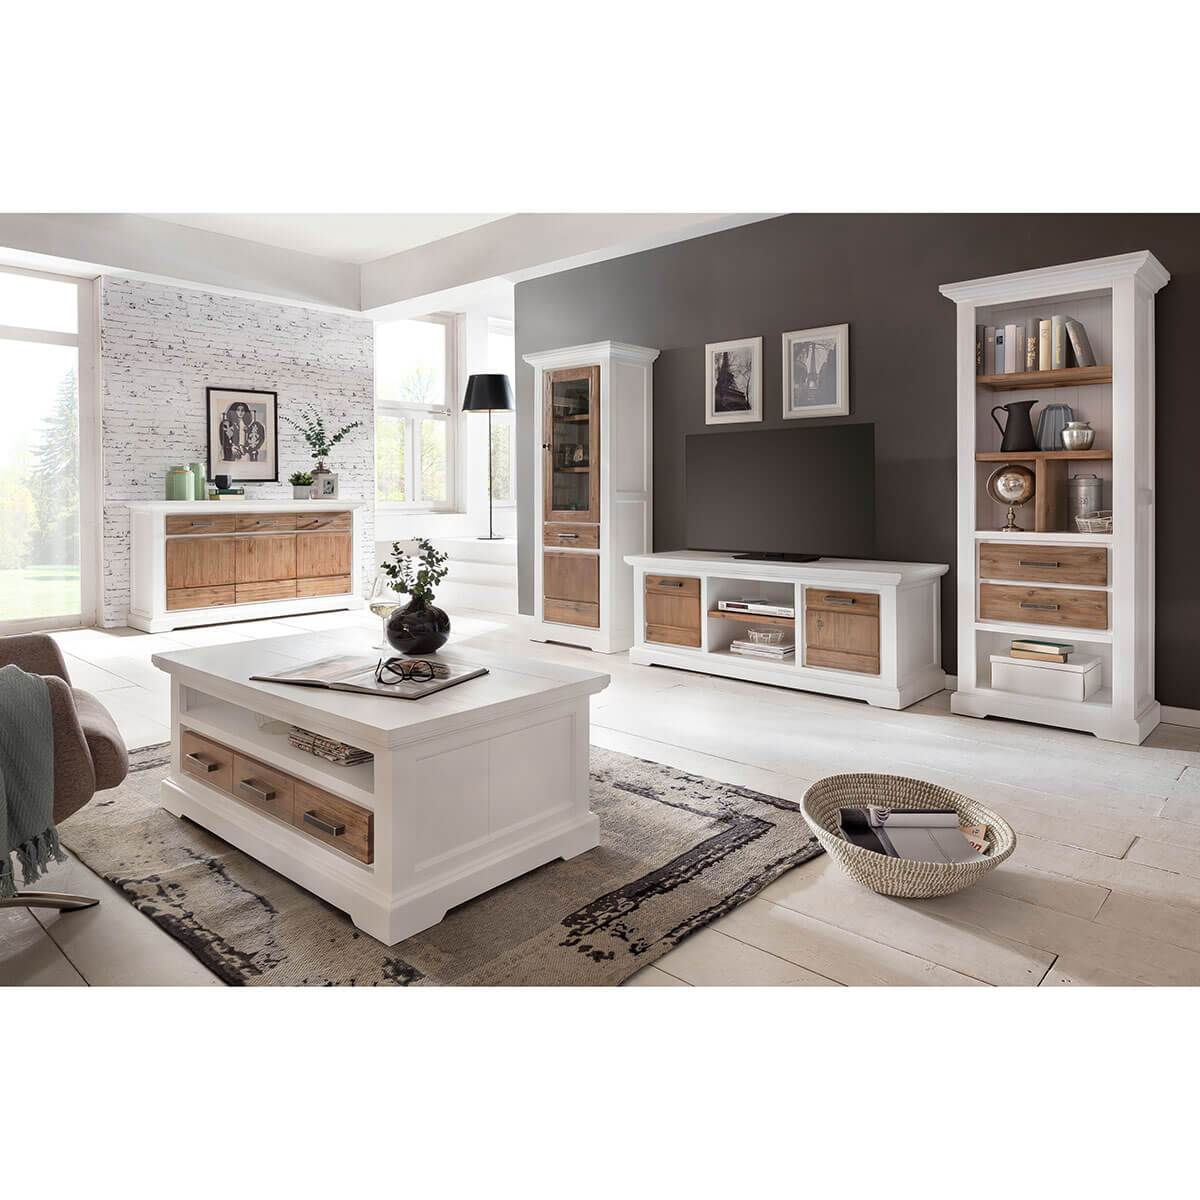 sideboard in massivholz kommode wei braun 166 cm schrank akazie massiv neu ebay. Black Bedroom Furniture Sets. Home Design Ideas